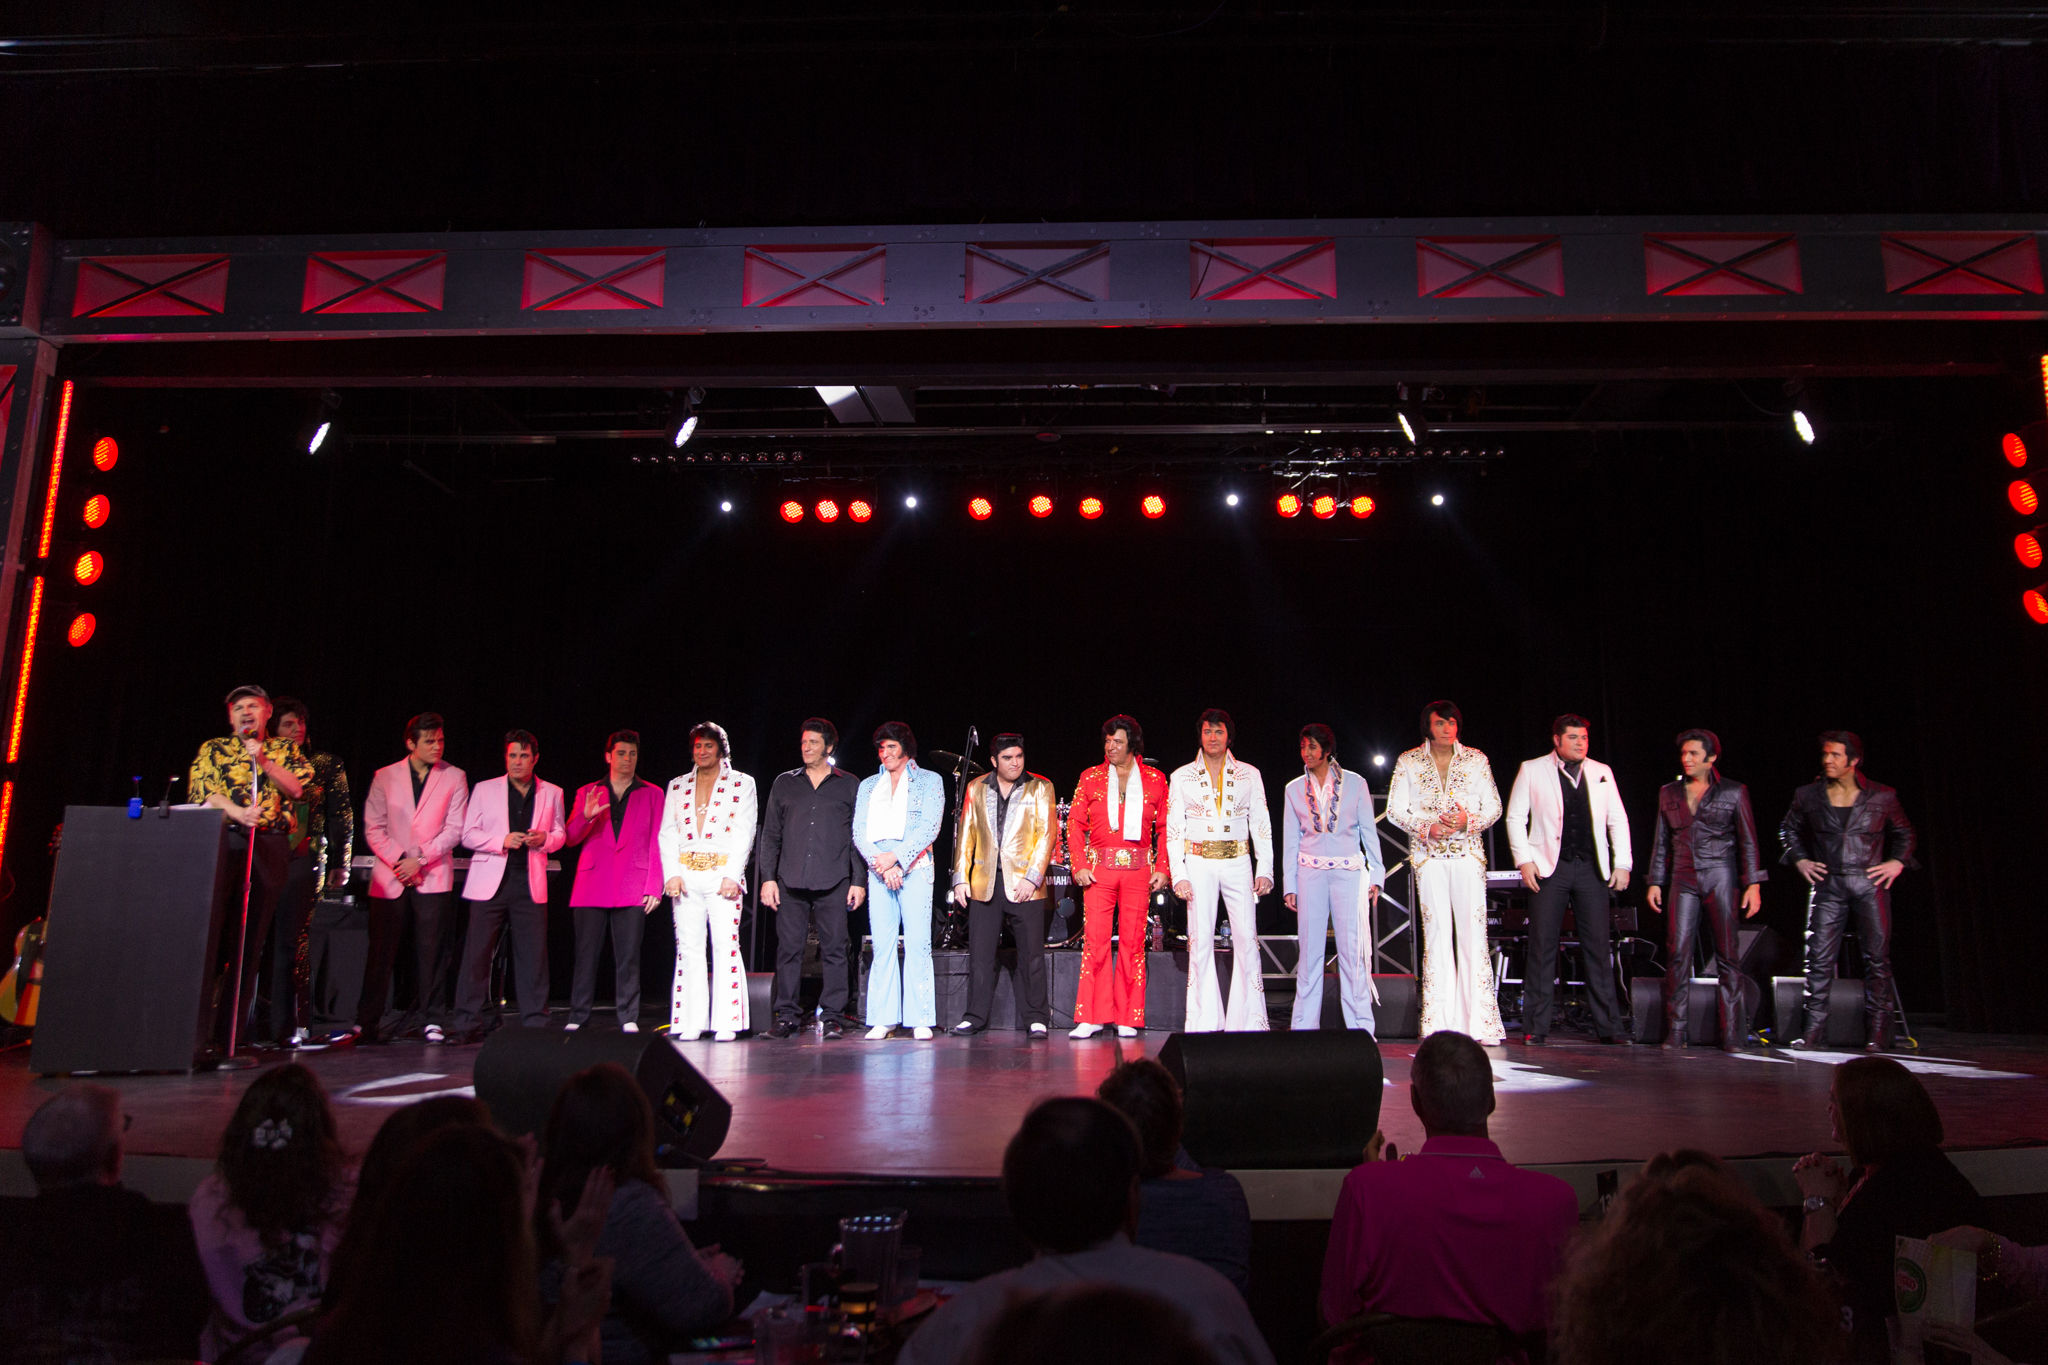 The Niagara Falls Elvis Festival attracts ETA competitors and performers from around the world. Pictured, are the 15 competitors from the 2018 NFEF competition.  Photo Credit: Lori-Anne Crewe, LA Crewe Photography.